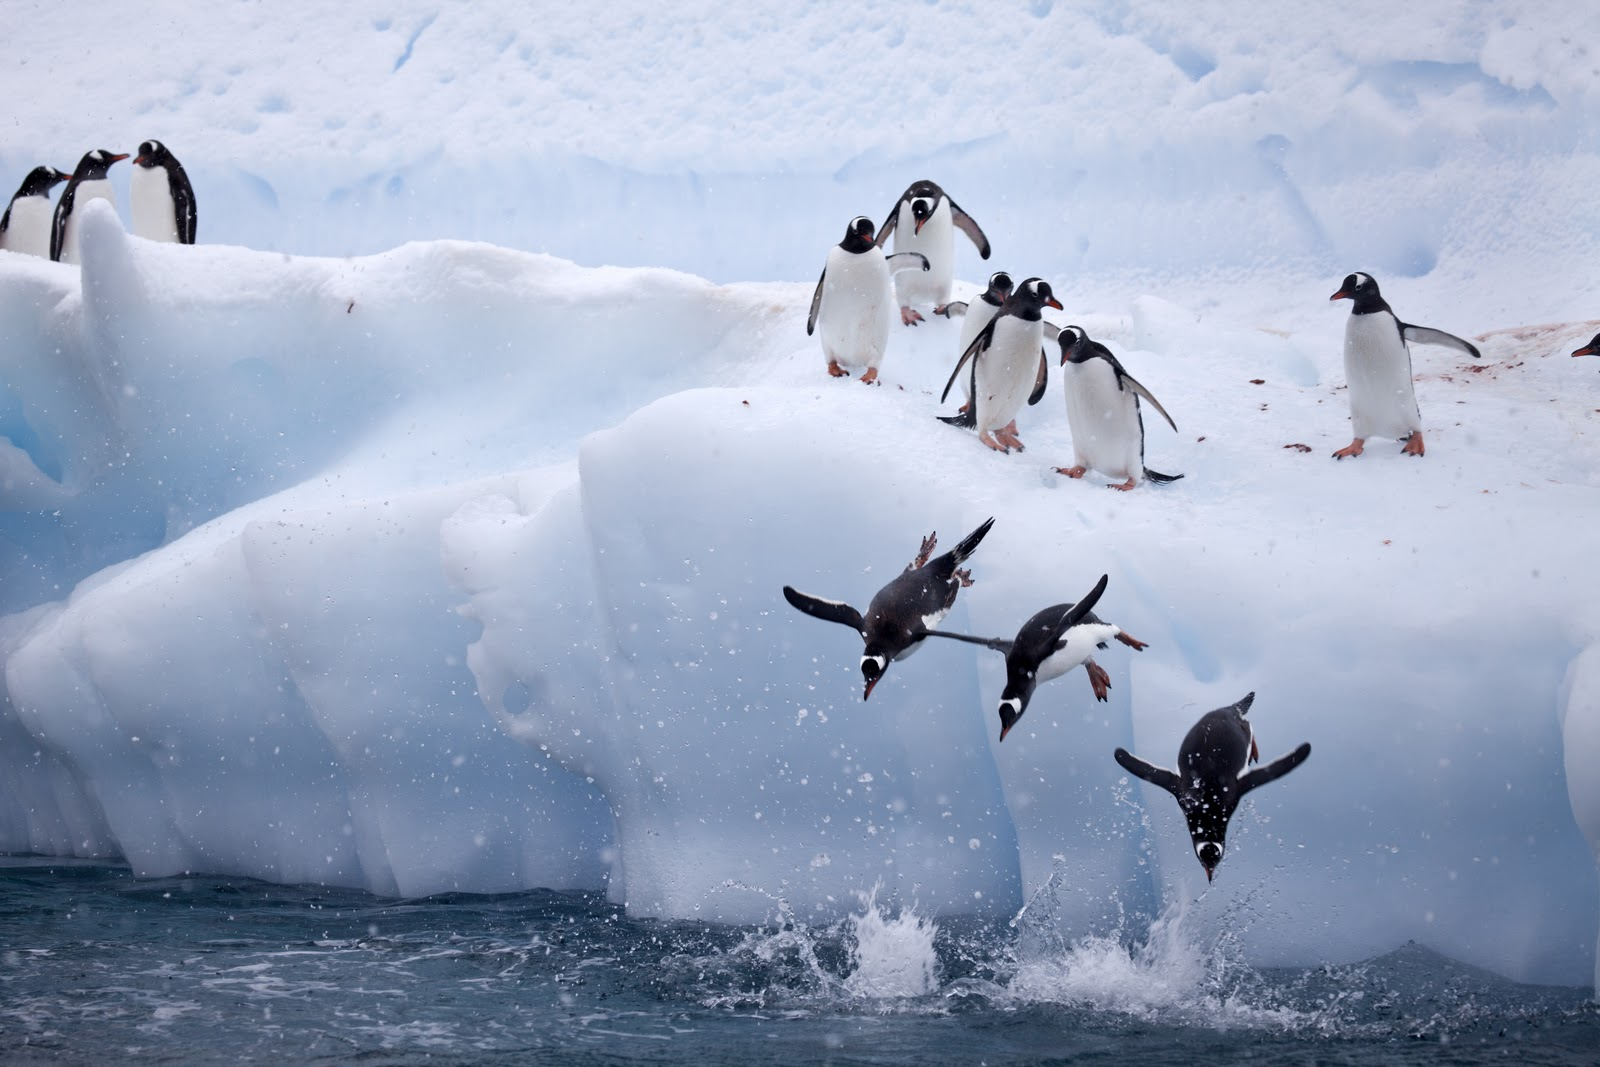 Three penguin Jumps